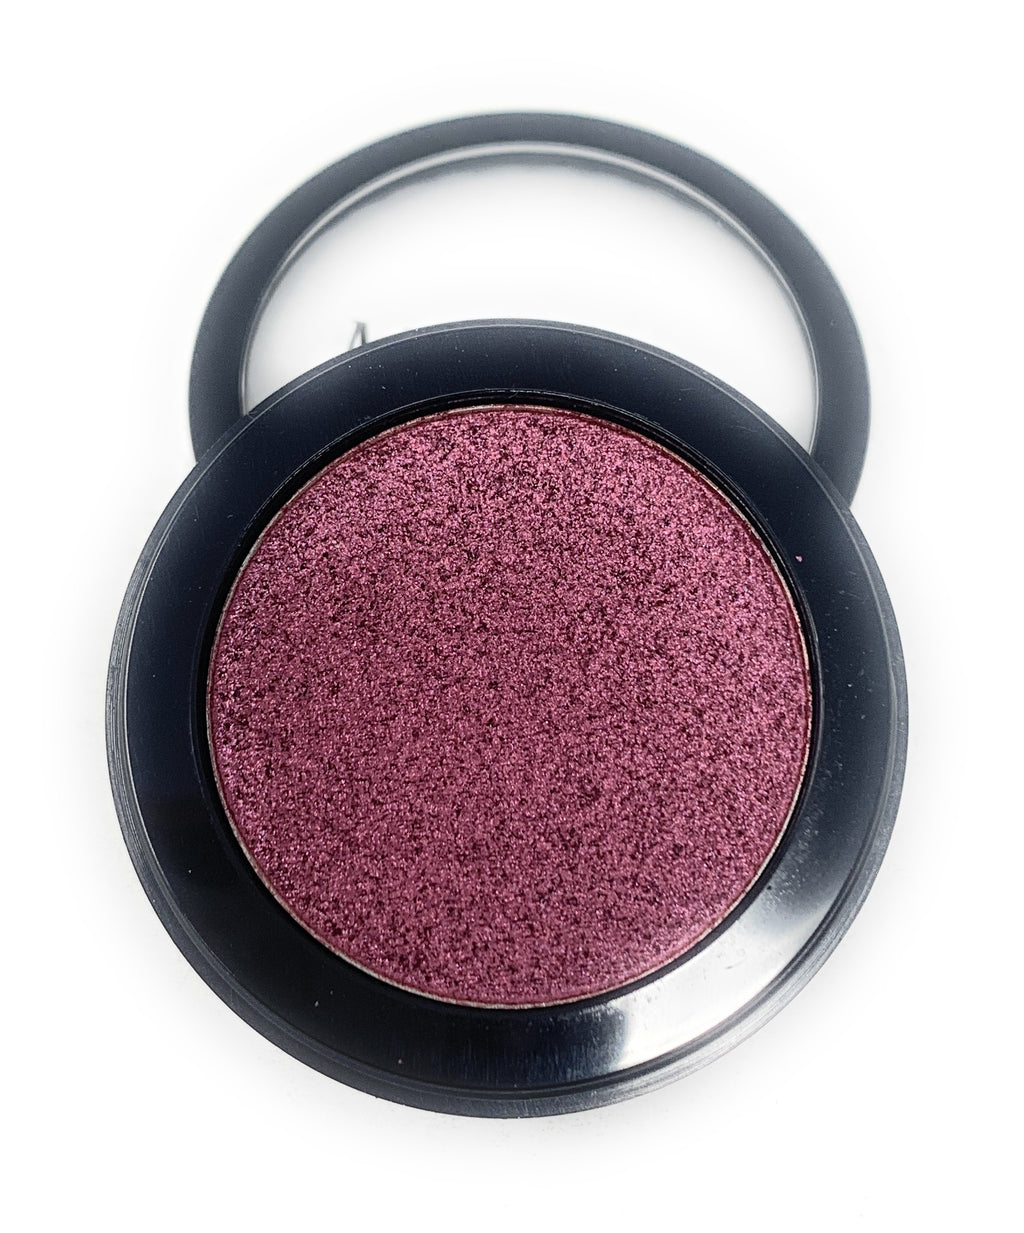 Single Pressed Plum Purple Foiled Eyeshadow In the Shade Rapunzel Compact Smooth Pigmented Eyeshadow Colour